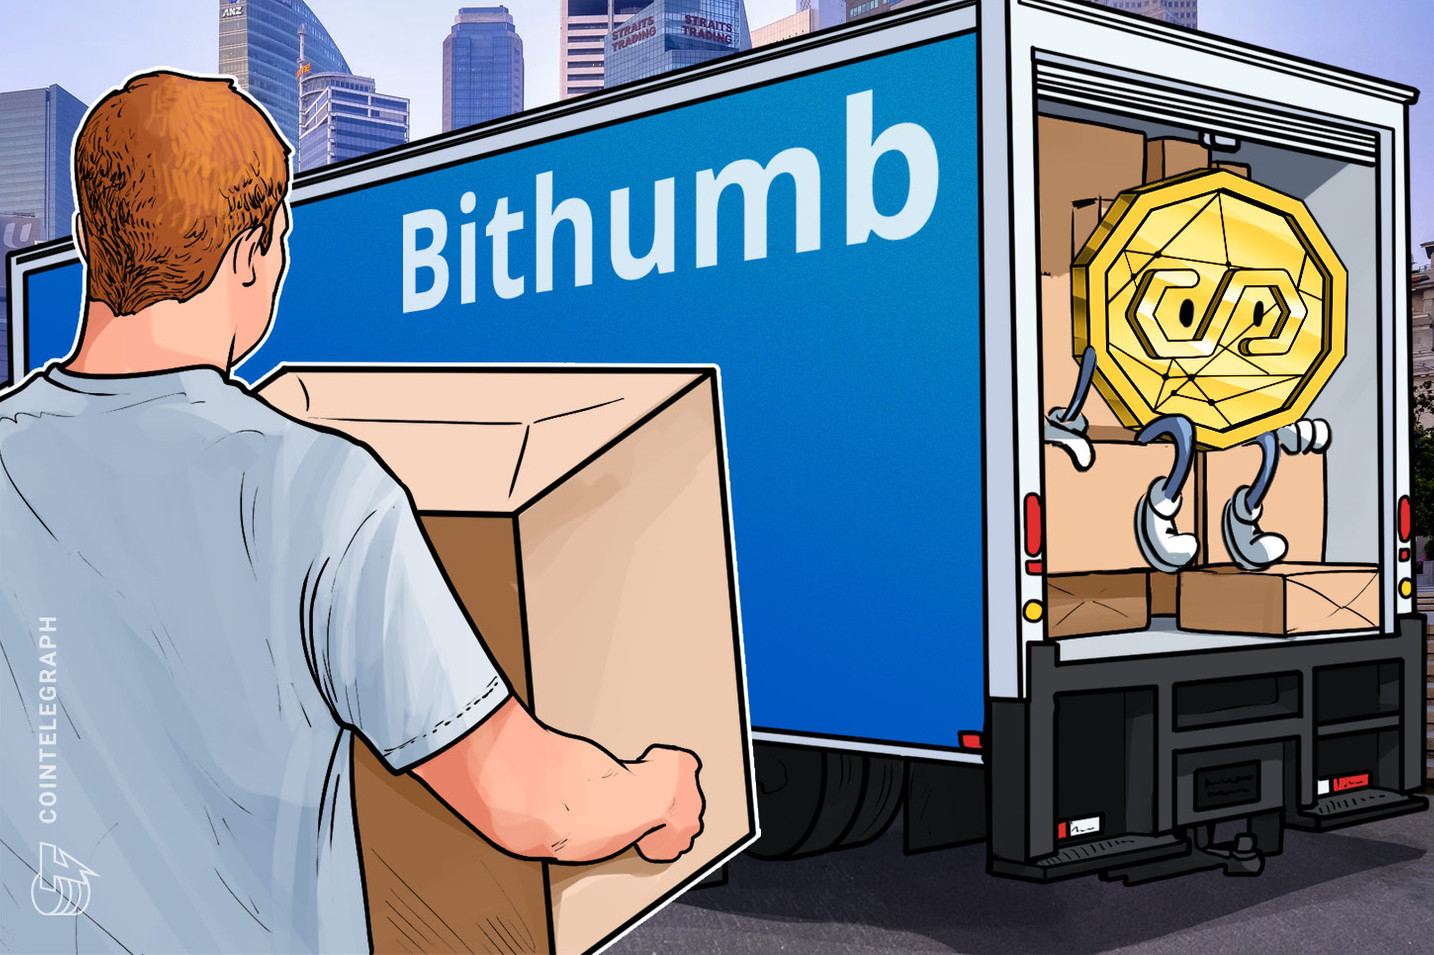 Bitholic Now Bithumb Singapore in New Expansion by South Korean Bithumb